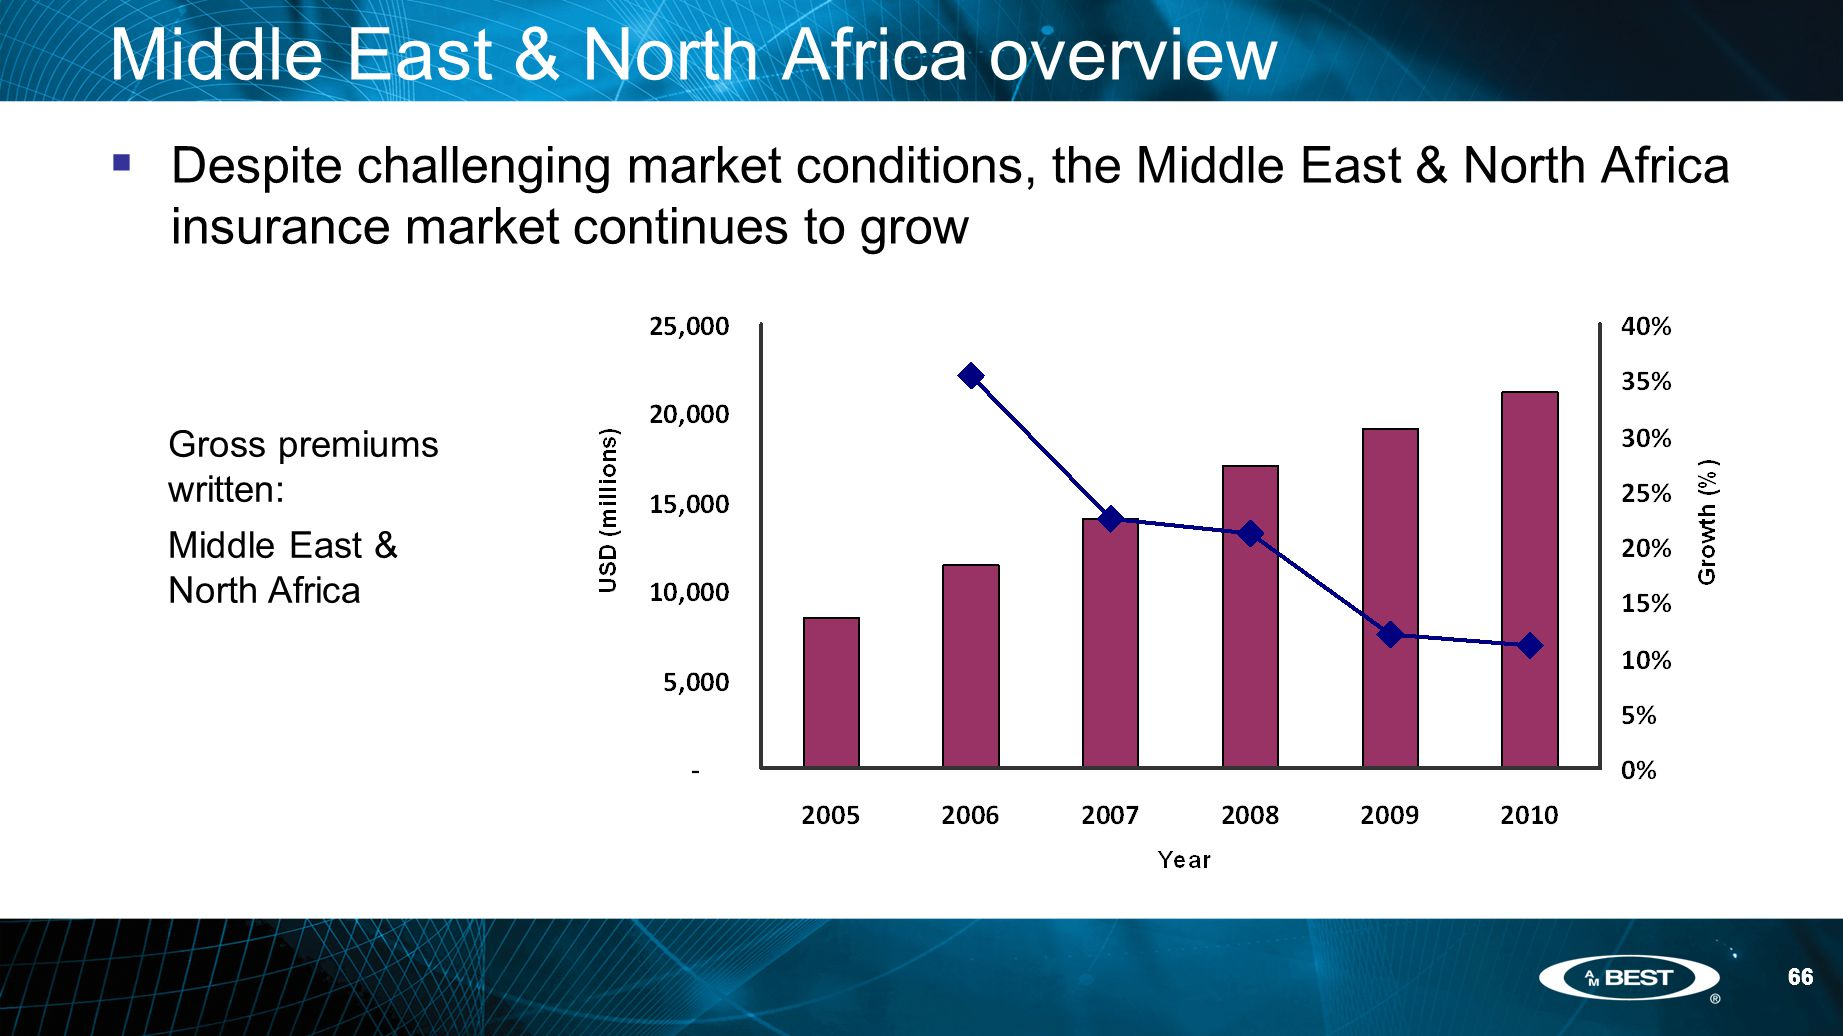 66 Middle East & North Africa overview  Despite challenging market conditions, the Middle East & North Africa insurance market continues to grow Gross premiums written: Middle East & North Africa